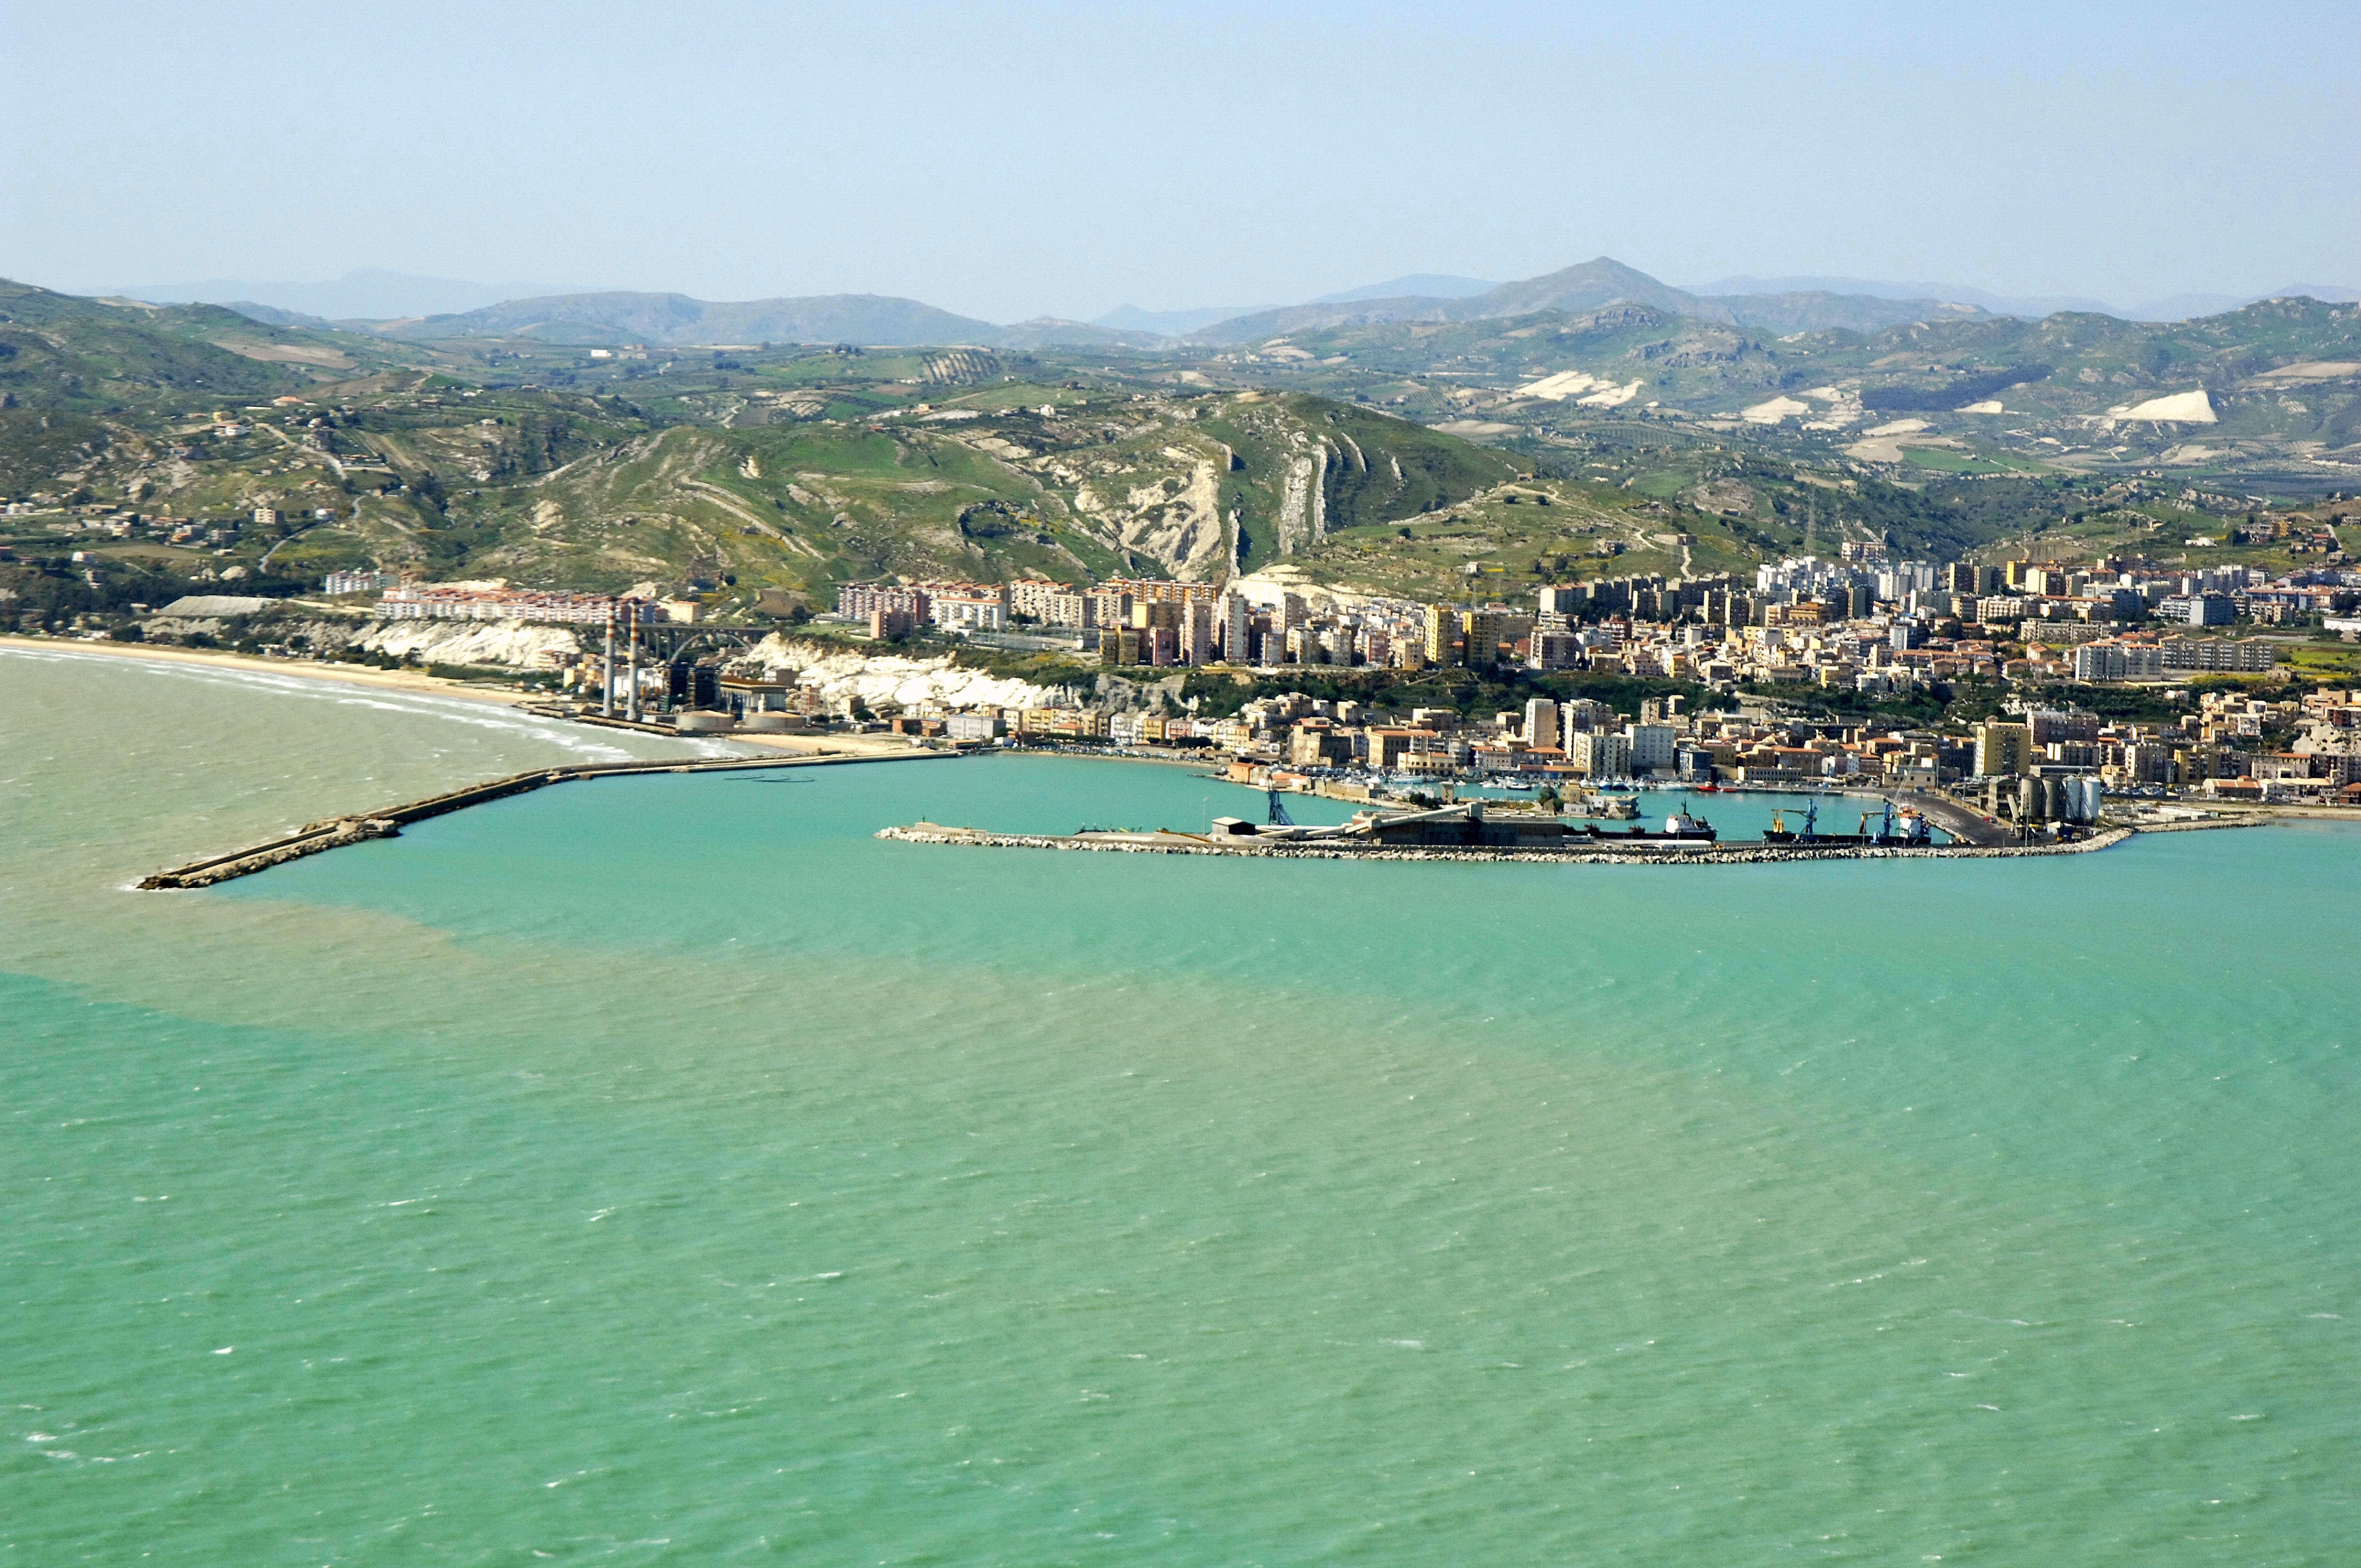 Porto Empedocle Marina in Porto Empedocle, Sicily, Italy - Marina Reviews -  Phone Number - Marinas.com